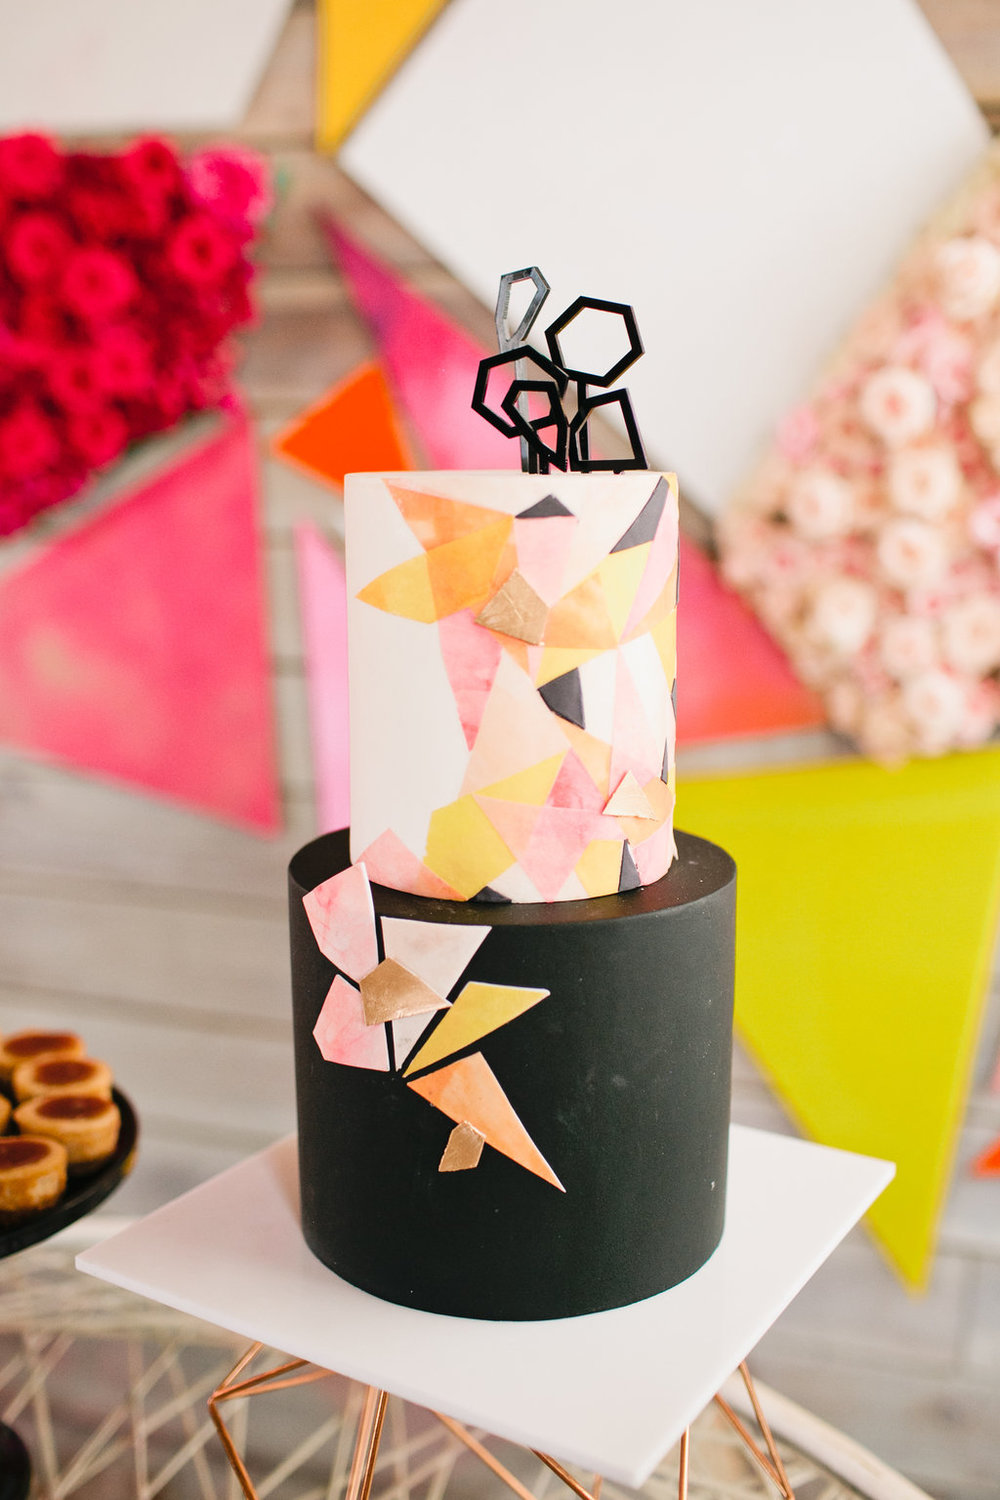 Black and colorful geometric cake